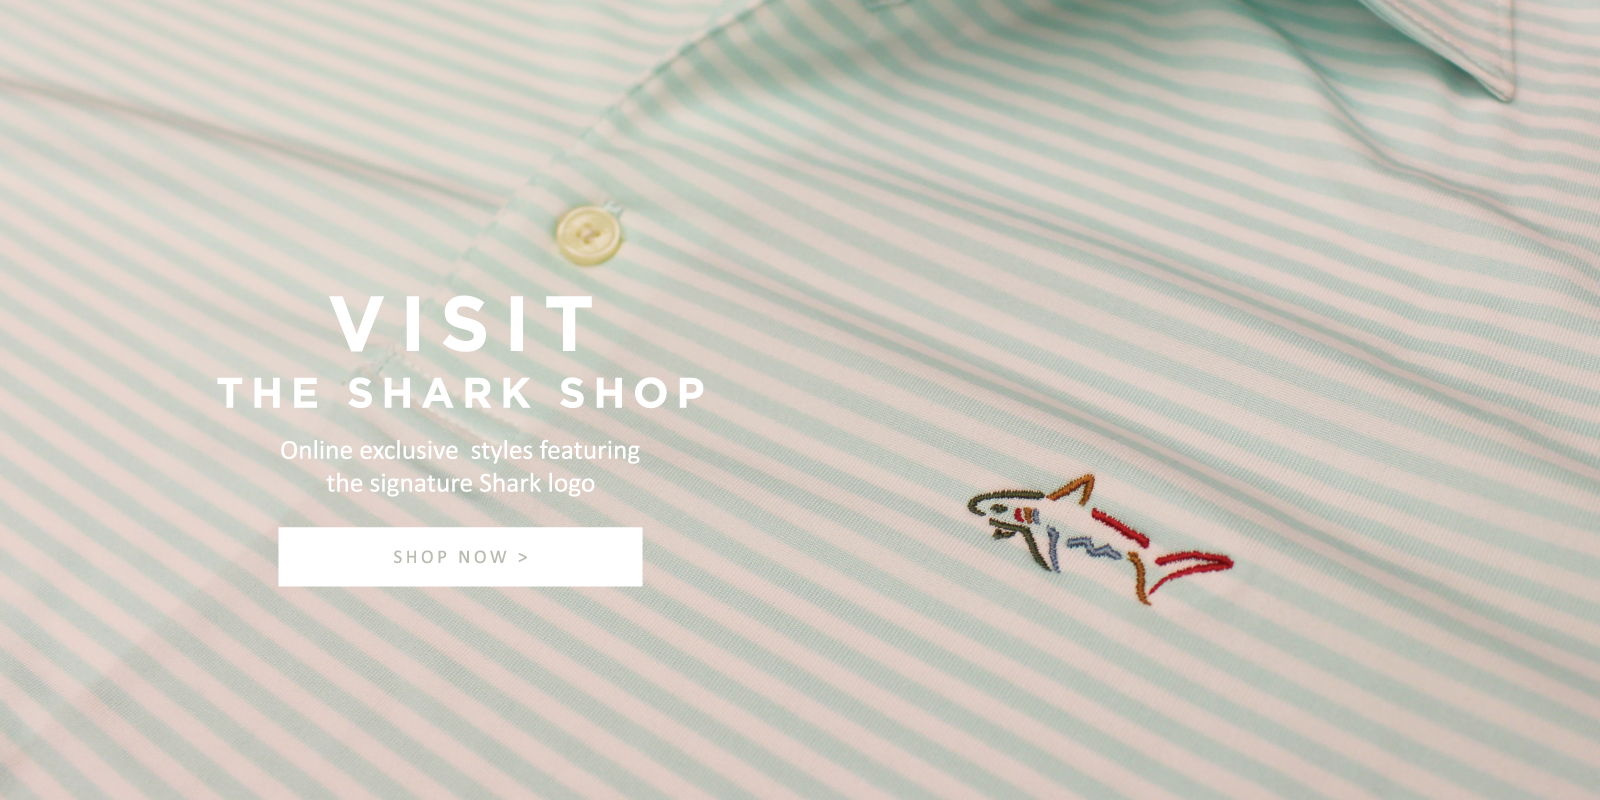 Visit the Shark Shop. Online exclusive styles featuring the signature Shark logo. Shop now.